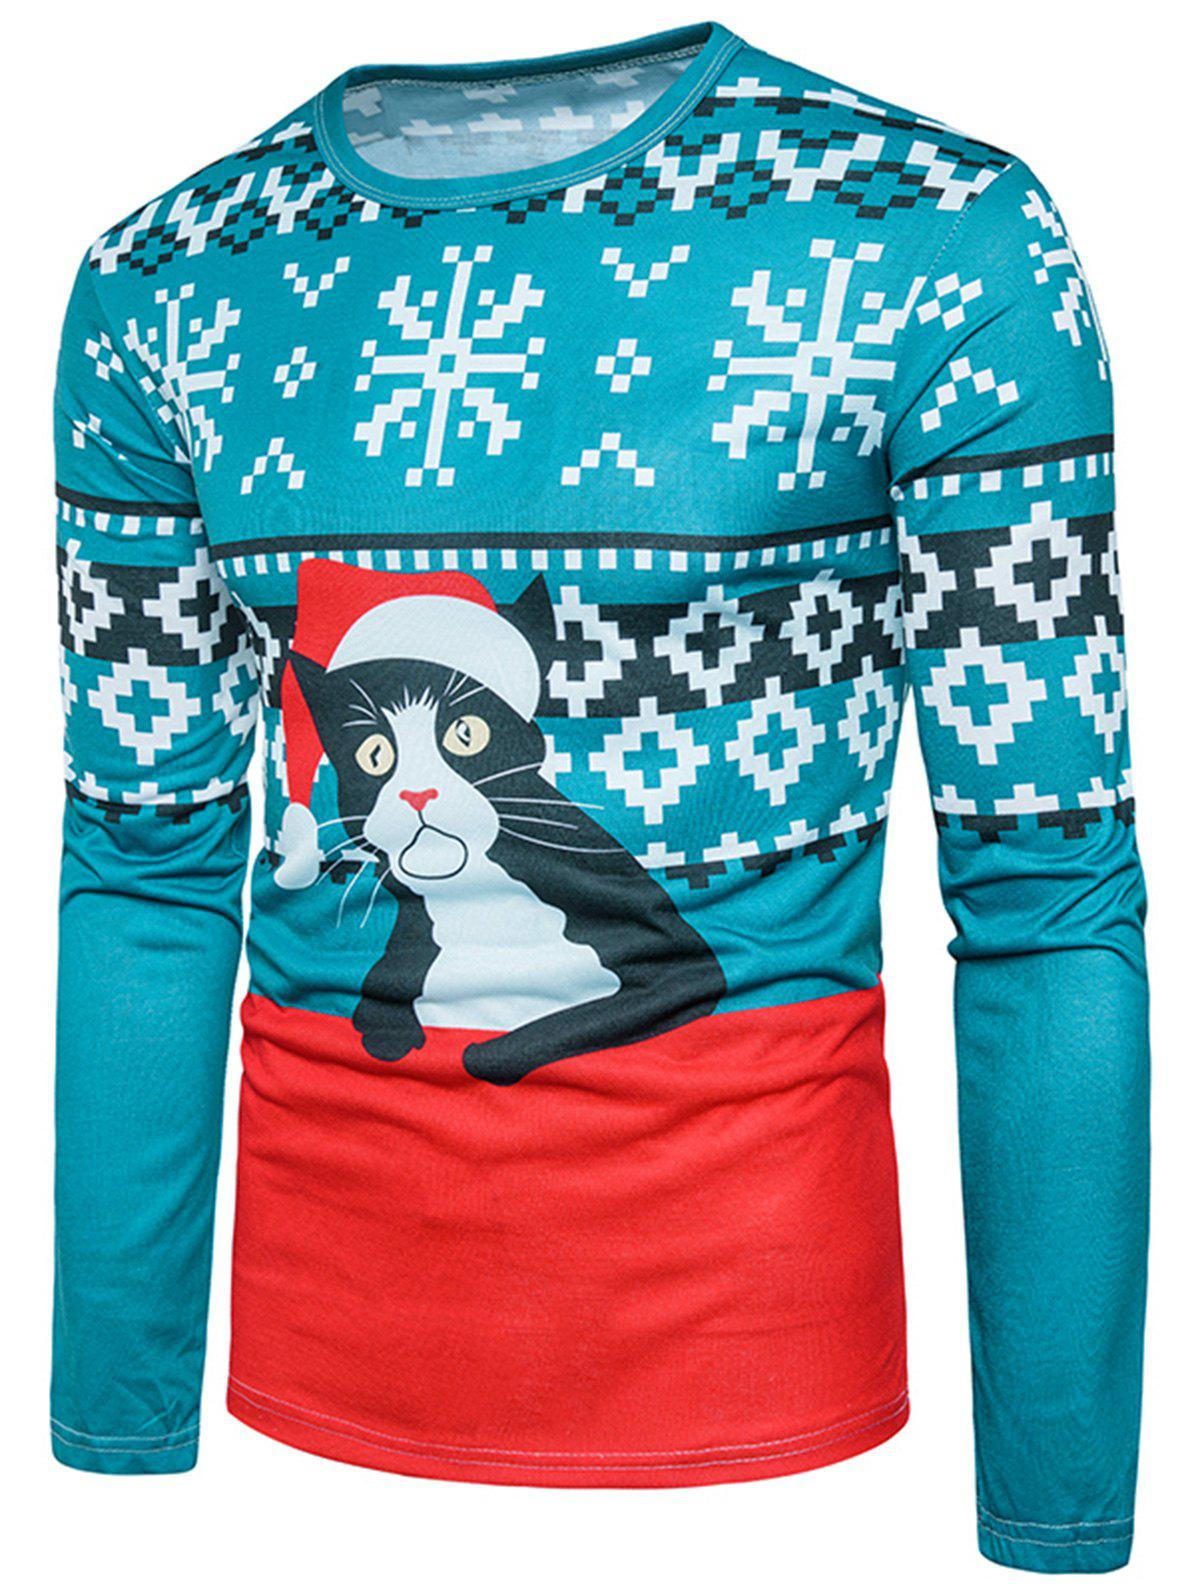 3D Cat Geometric Print Christmas T-shirtMEN<br><br>Size: 2XL; Color: COLORMIX; Material: Cotton,Polyester; Sleeve Length: Full; Collar: Crew Neck; Style: Casual,Fashion,Streetwear; Pattern Type: 3D,Animal,Geometric; Season: Fall; Weight: 0.3000kg; Package Contents: 1 x T-shirt;